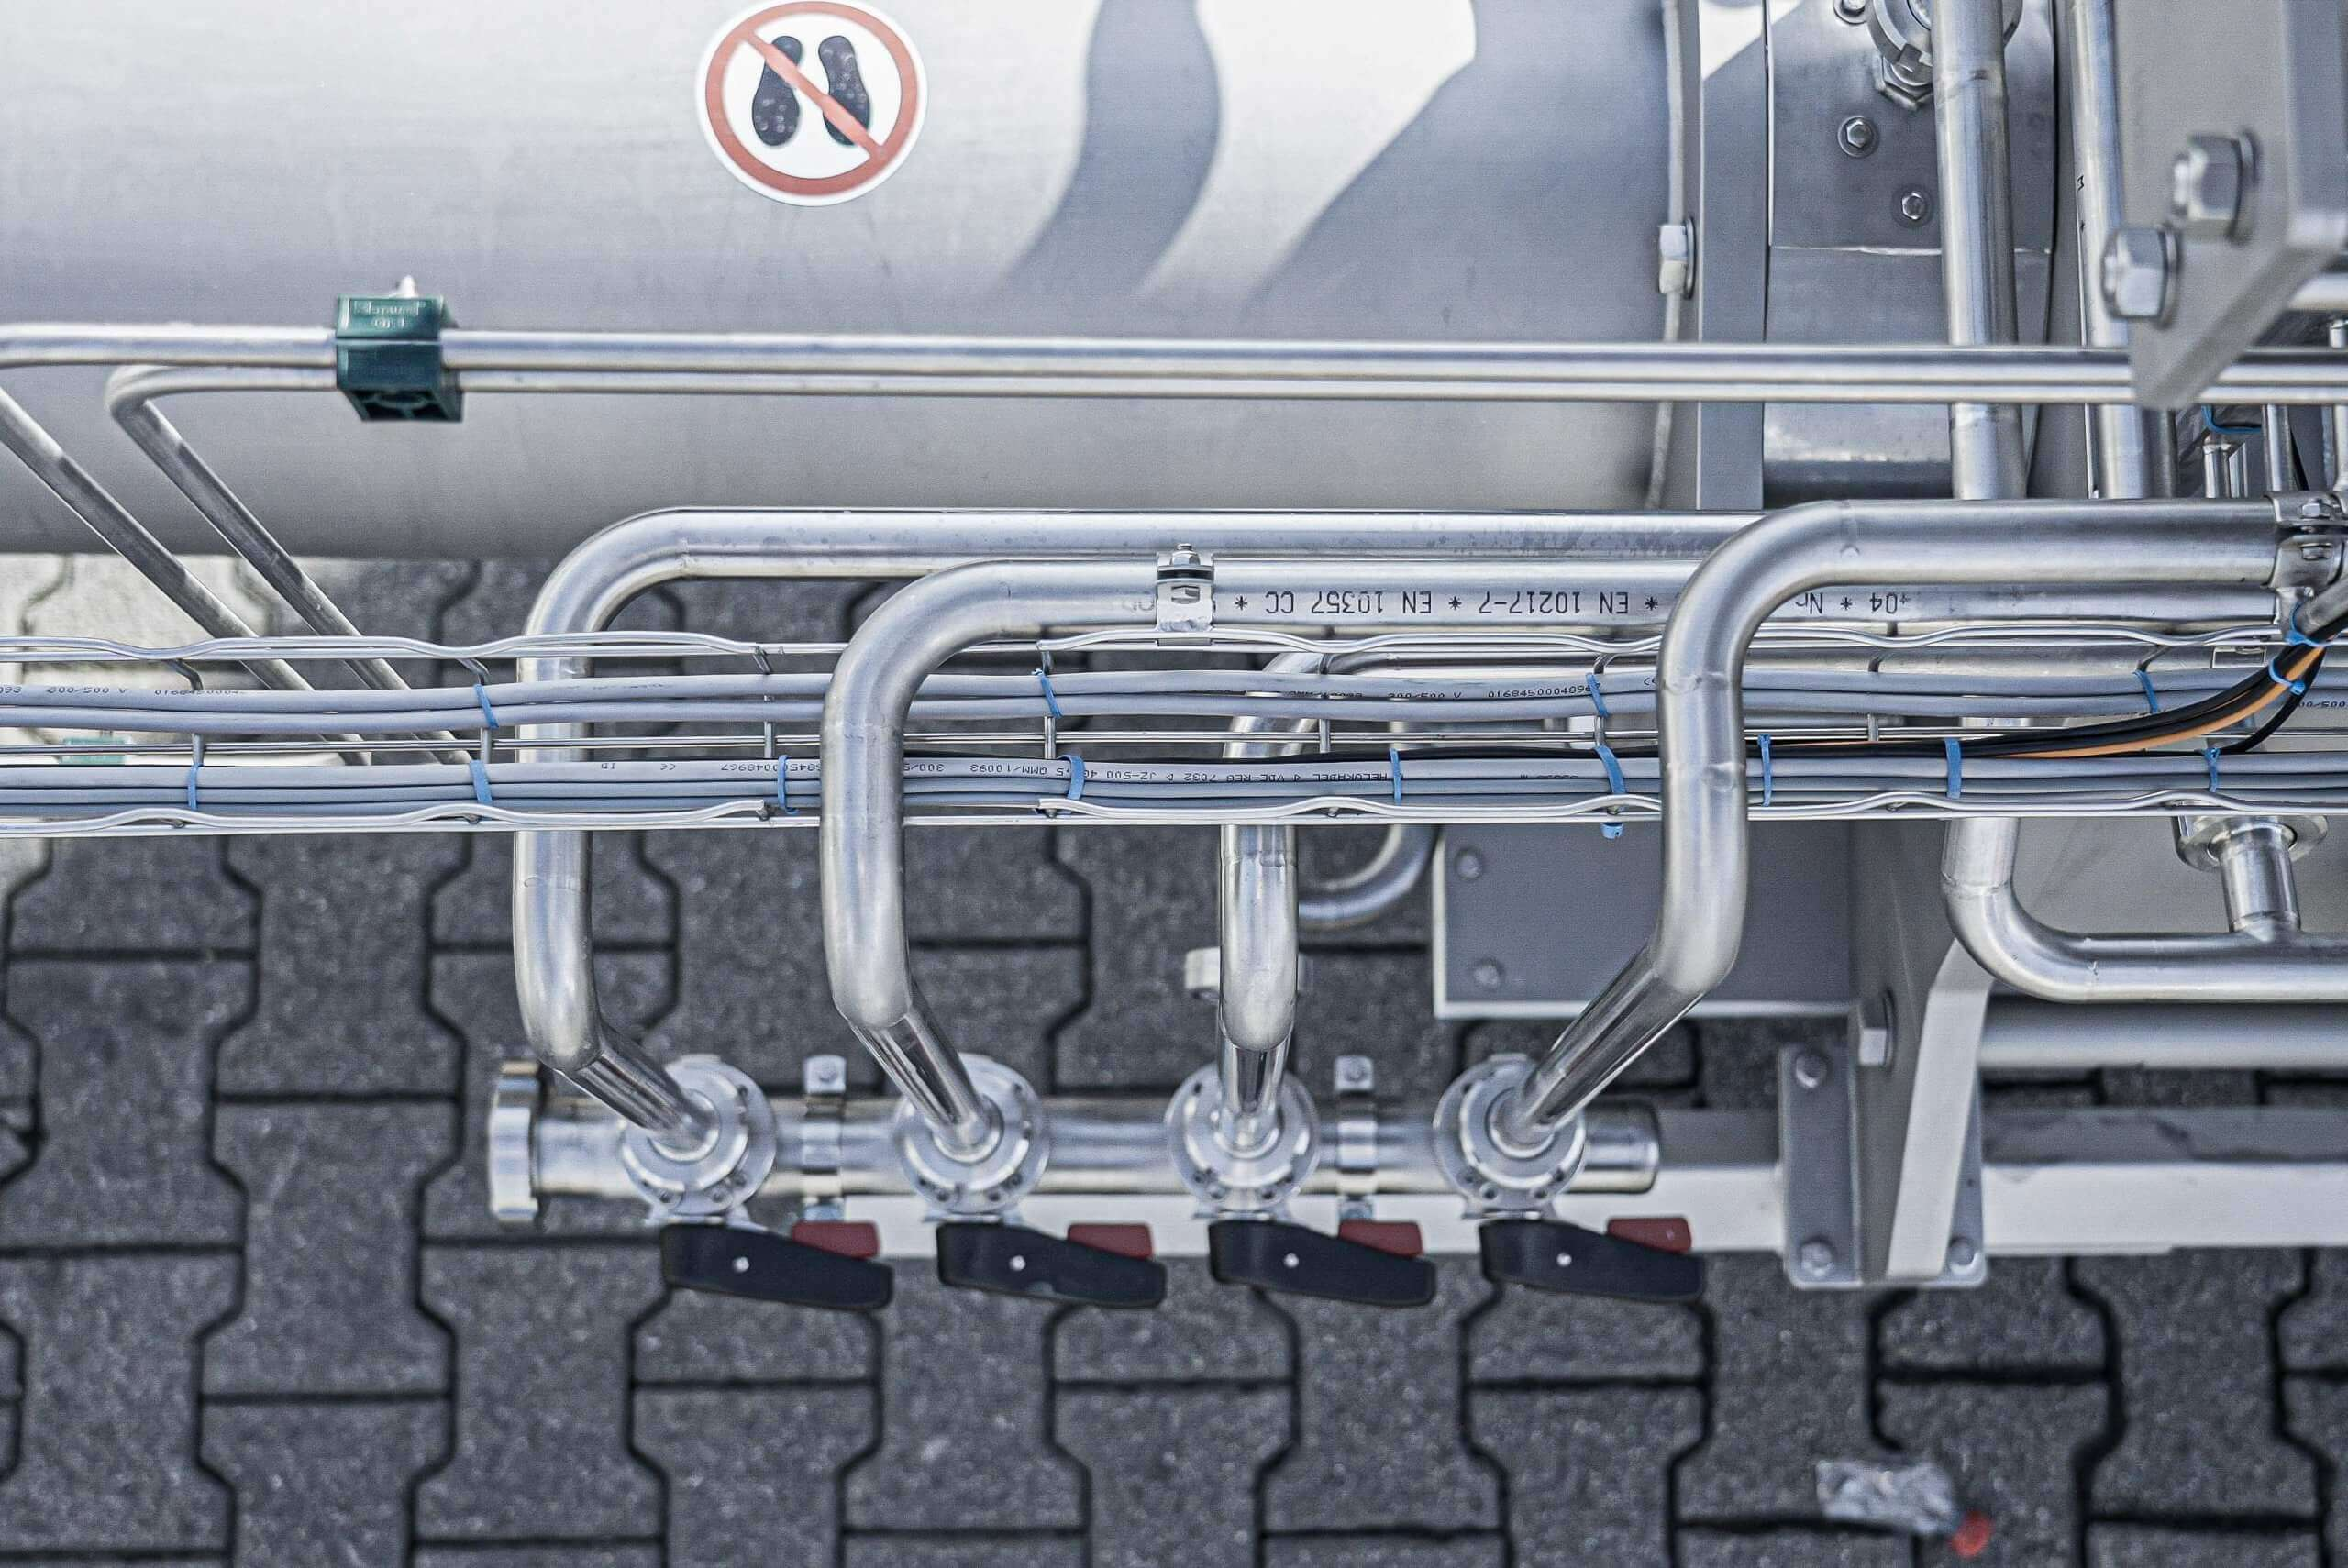 CIP (Cleaning-in-place) pipes on the PUEHLER machine